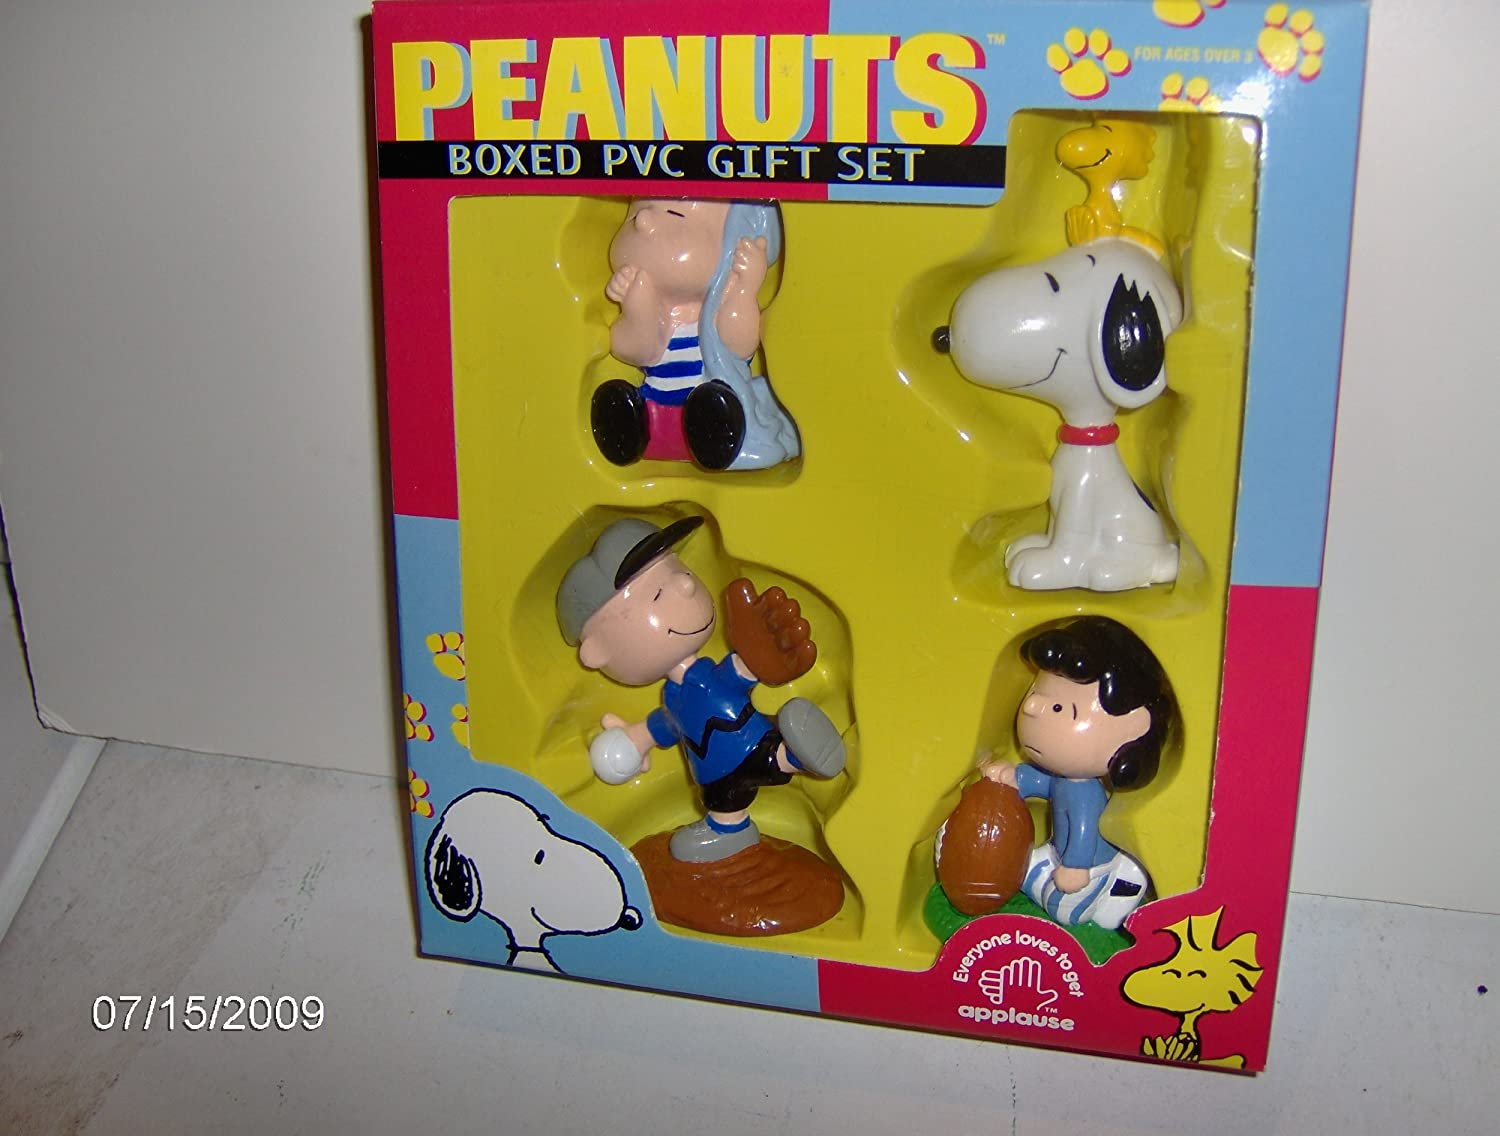 Peanuts Boxed PVC Gift Set by Applause